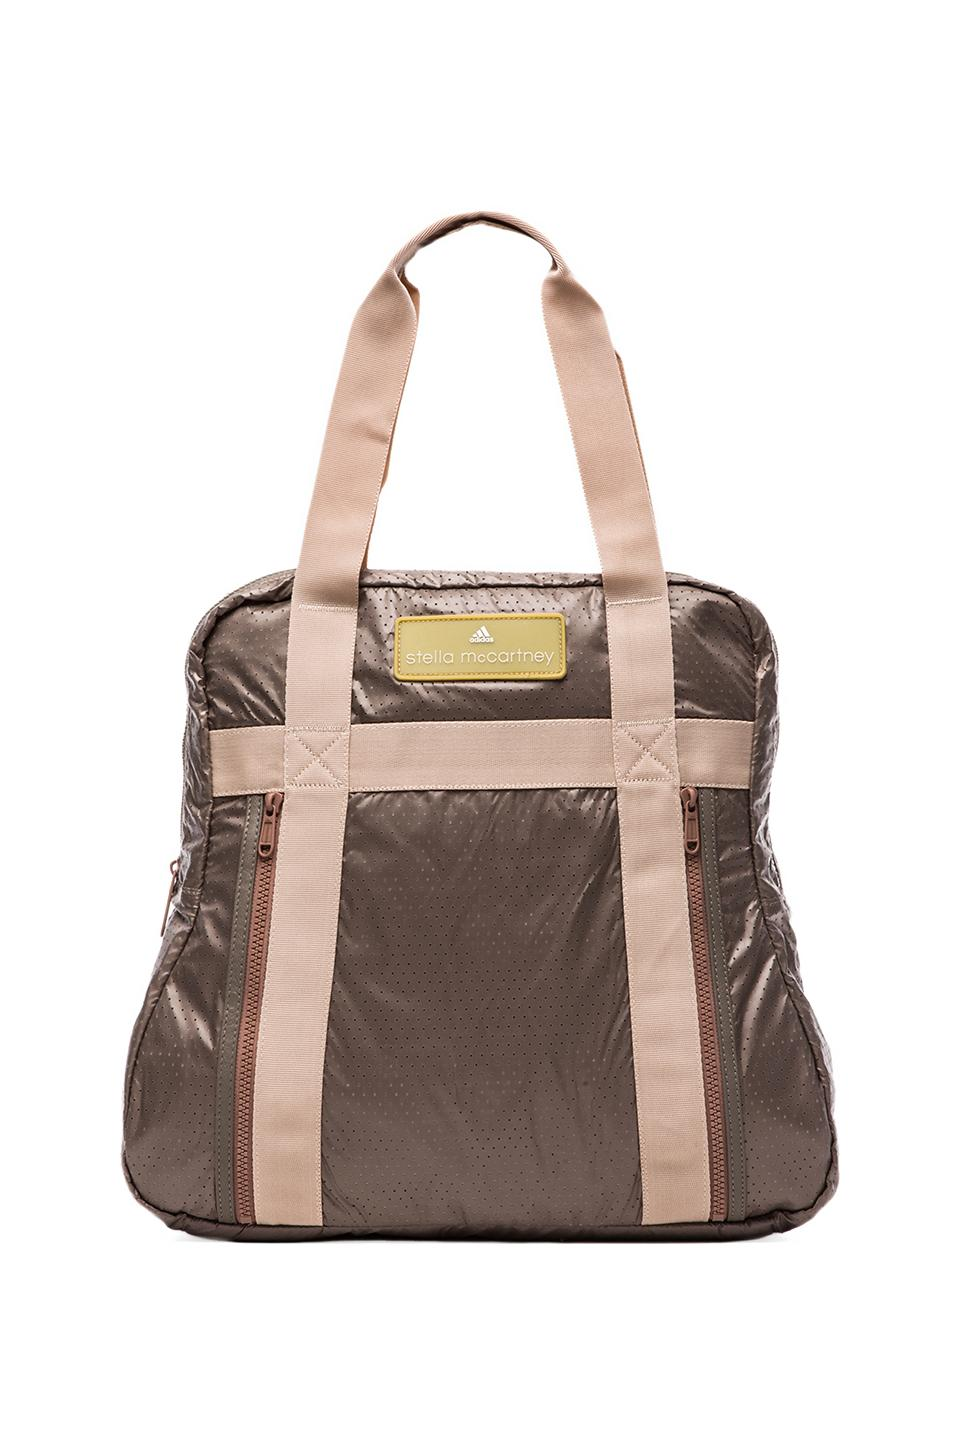 adidas by Stella McCartney Yoga Bag in Grey & White